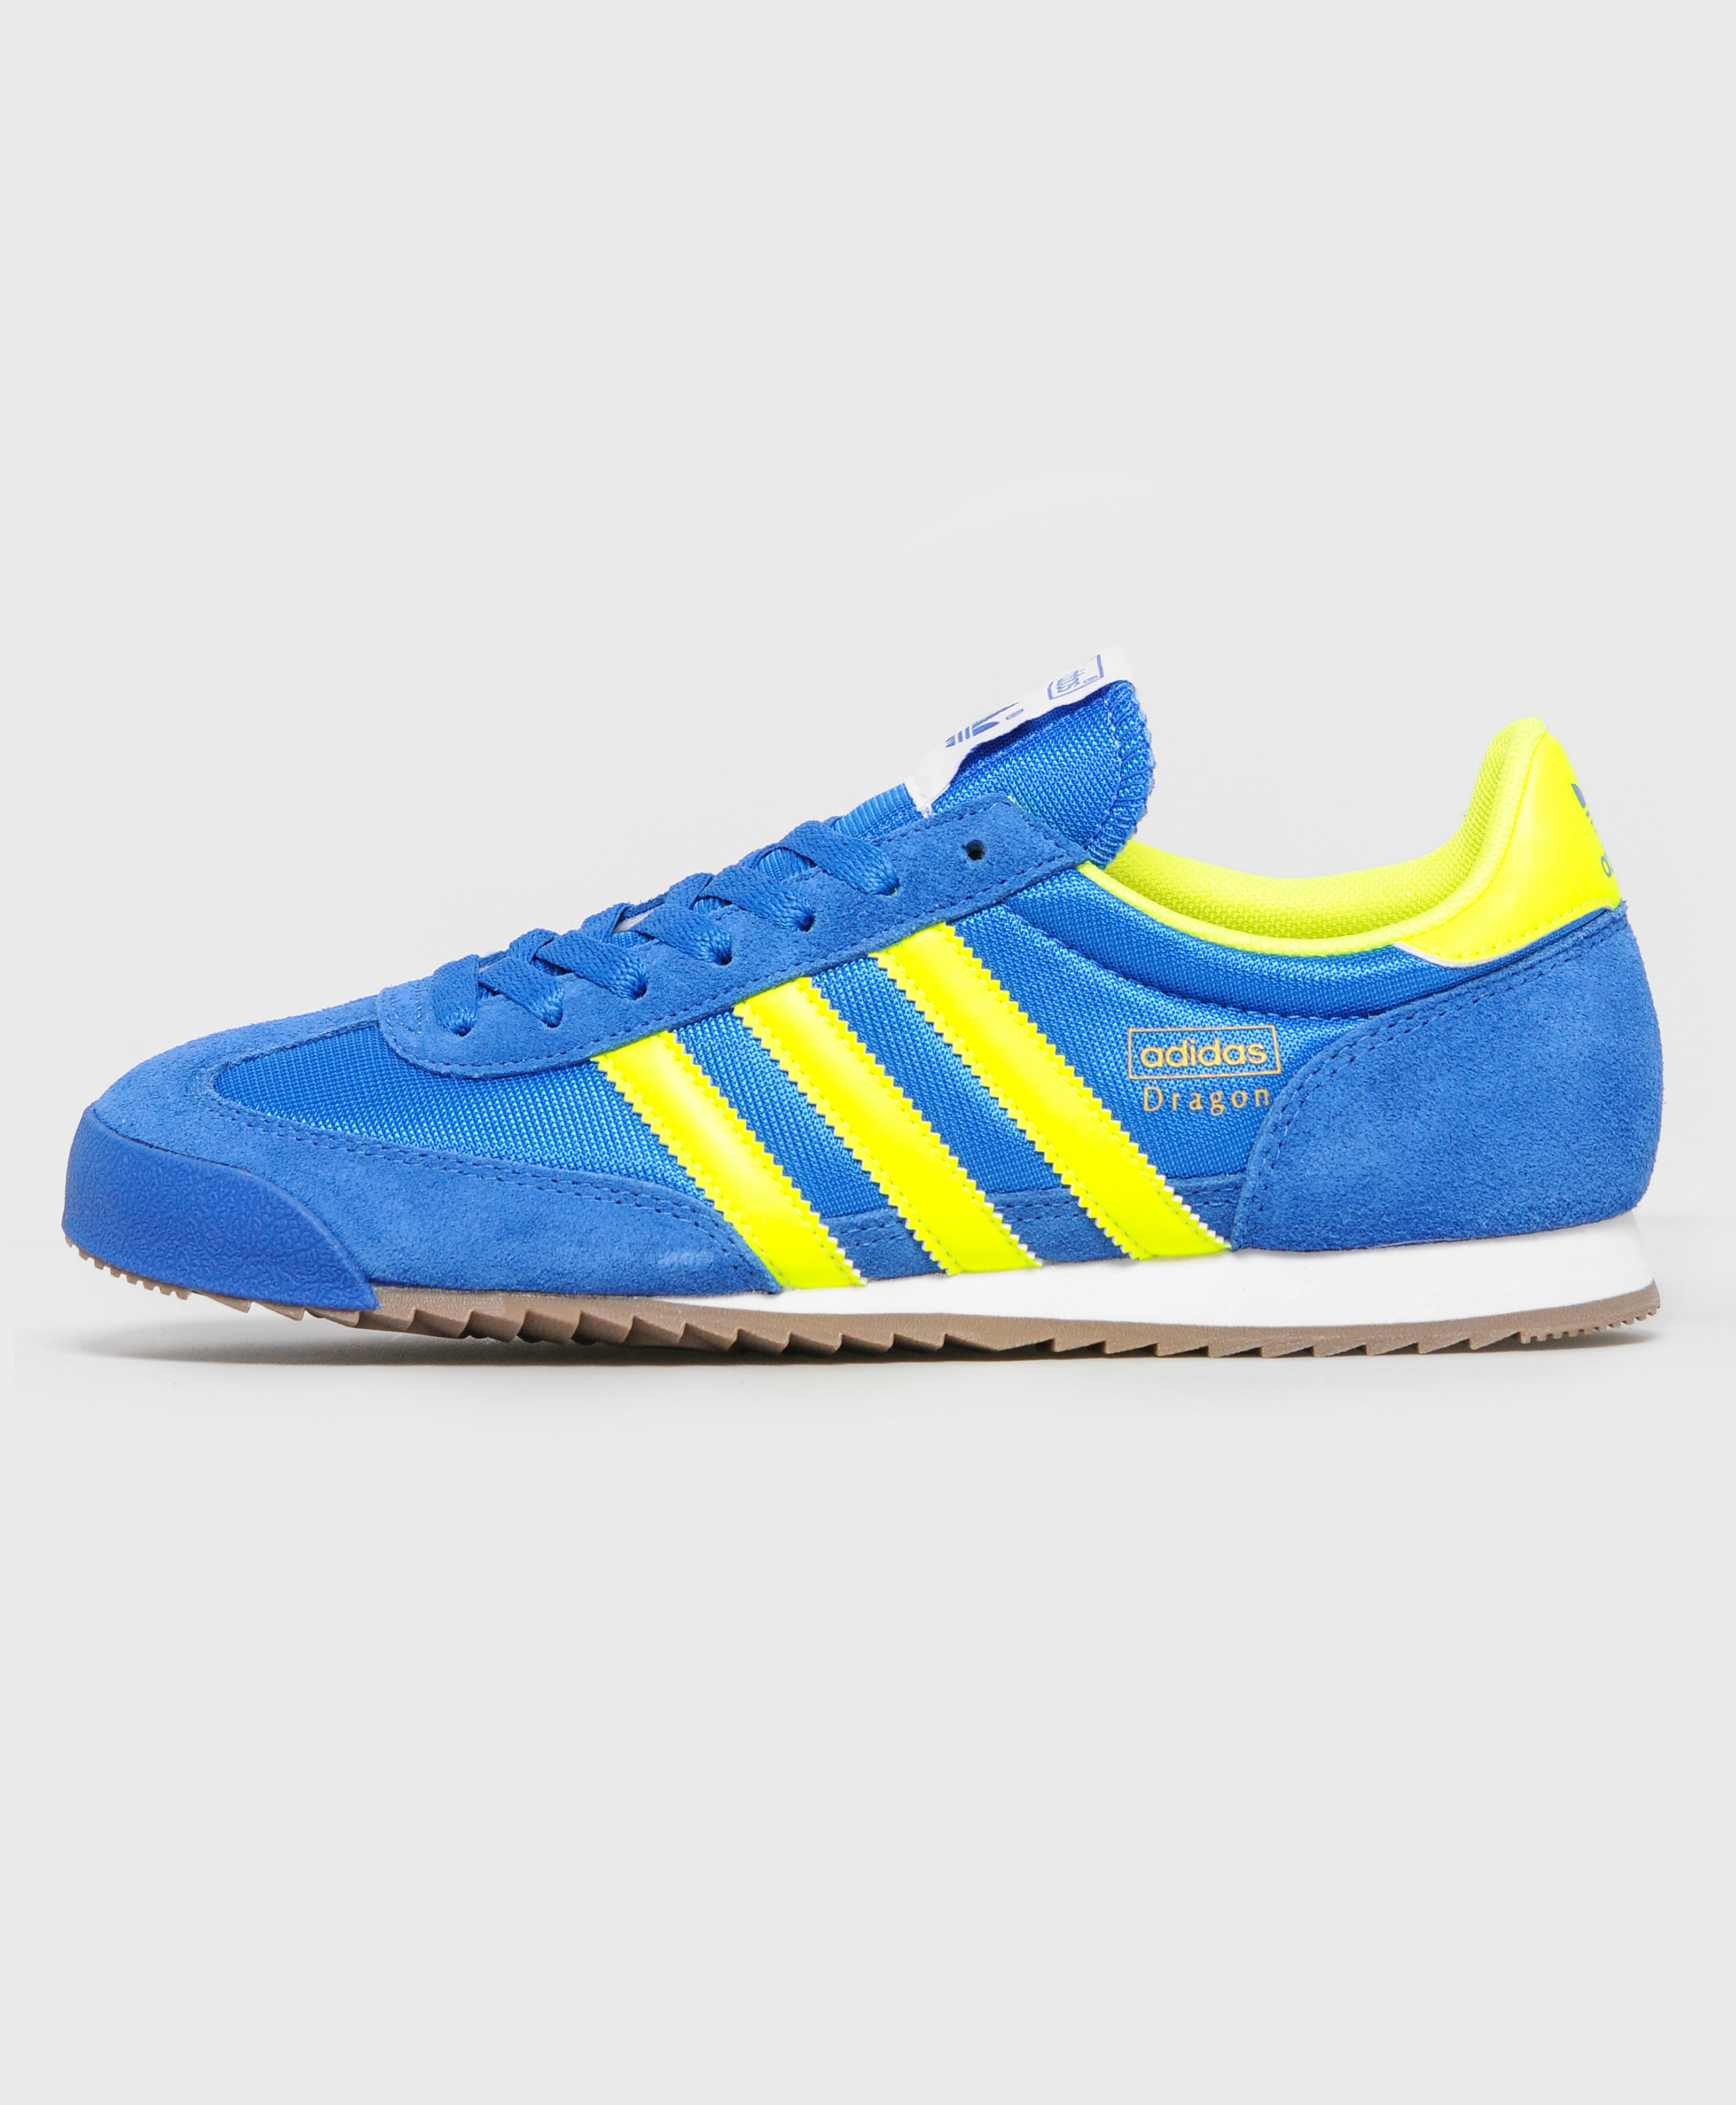 adidas dragon trainers blue and yellow